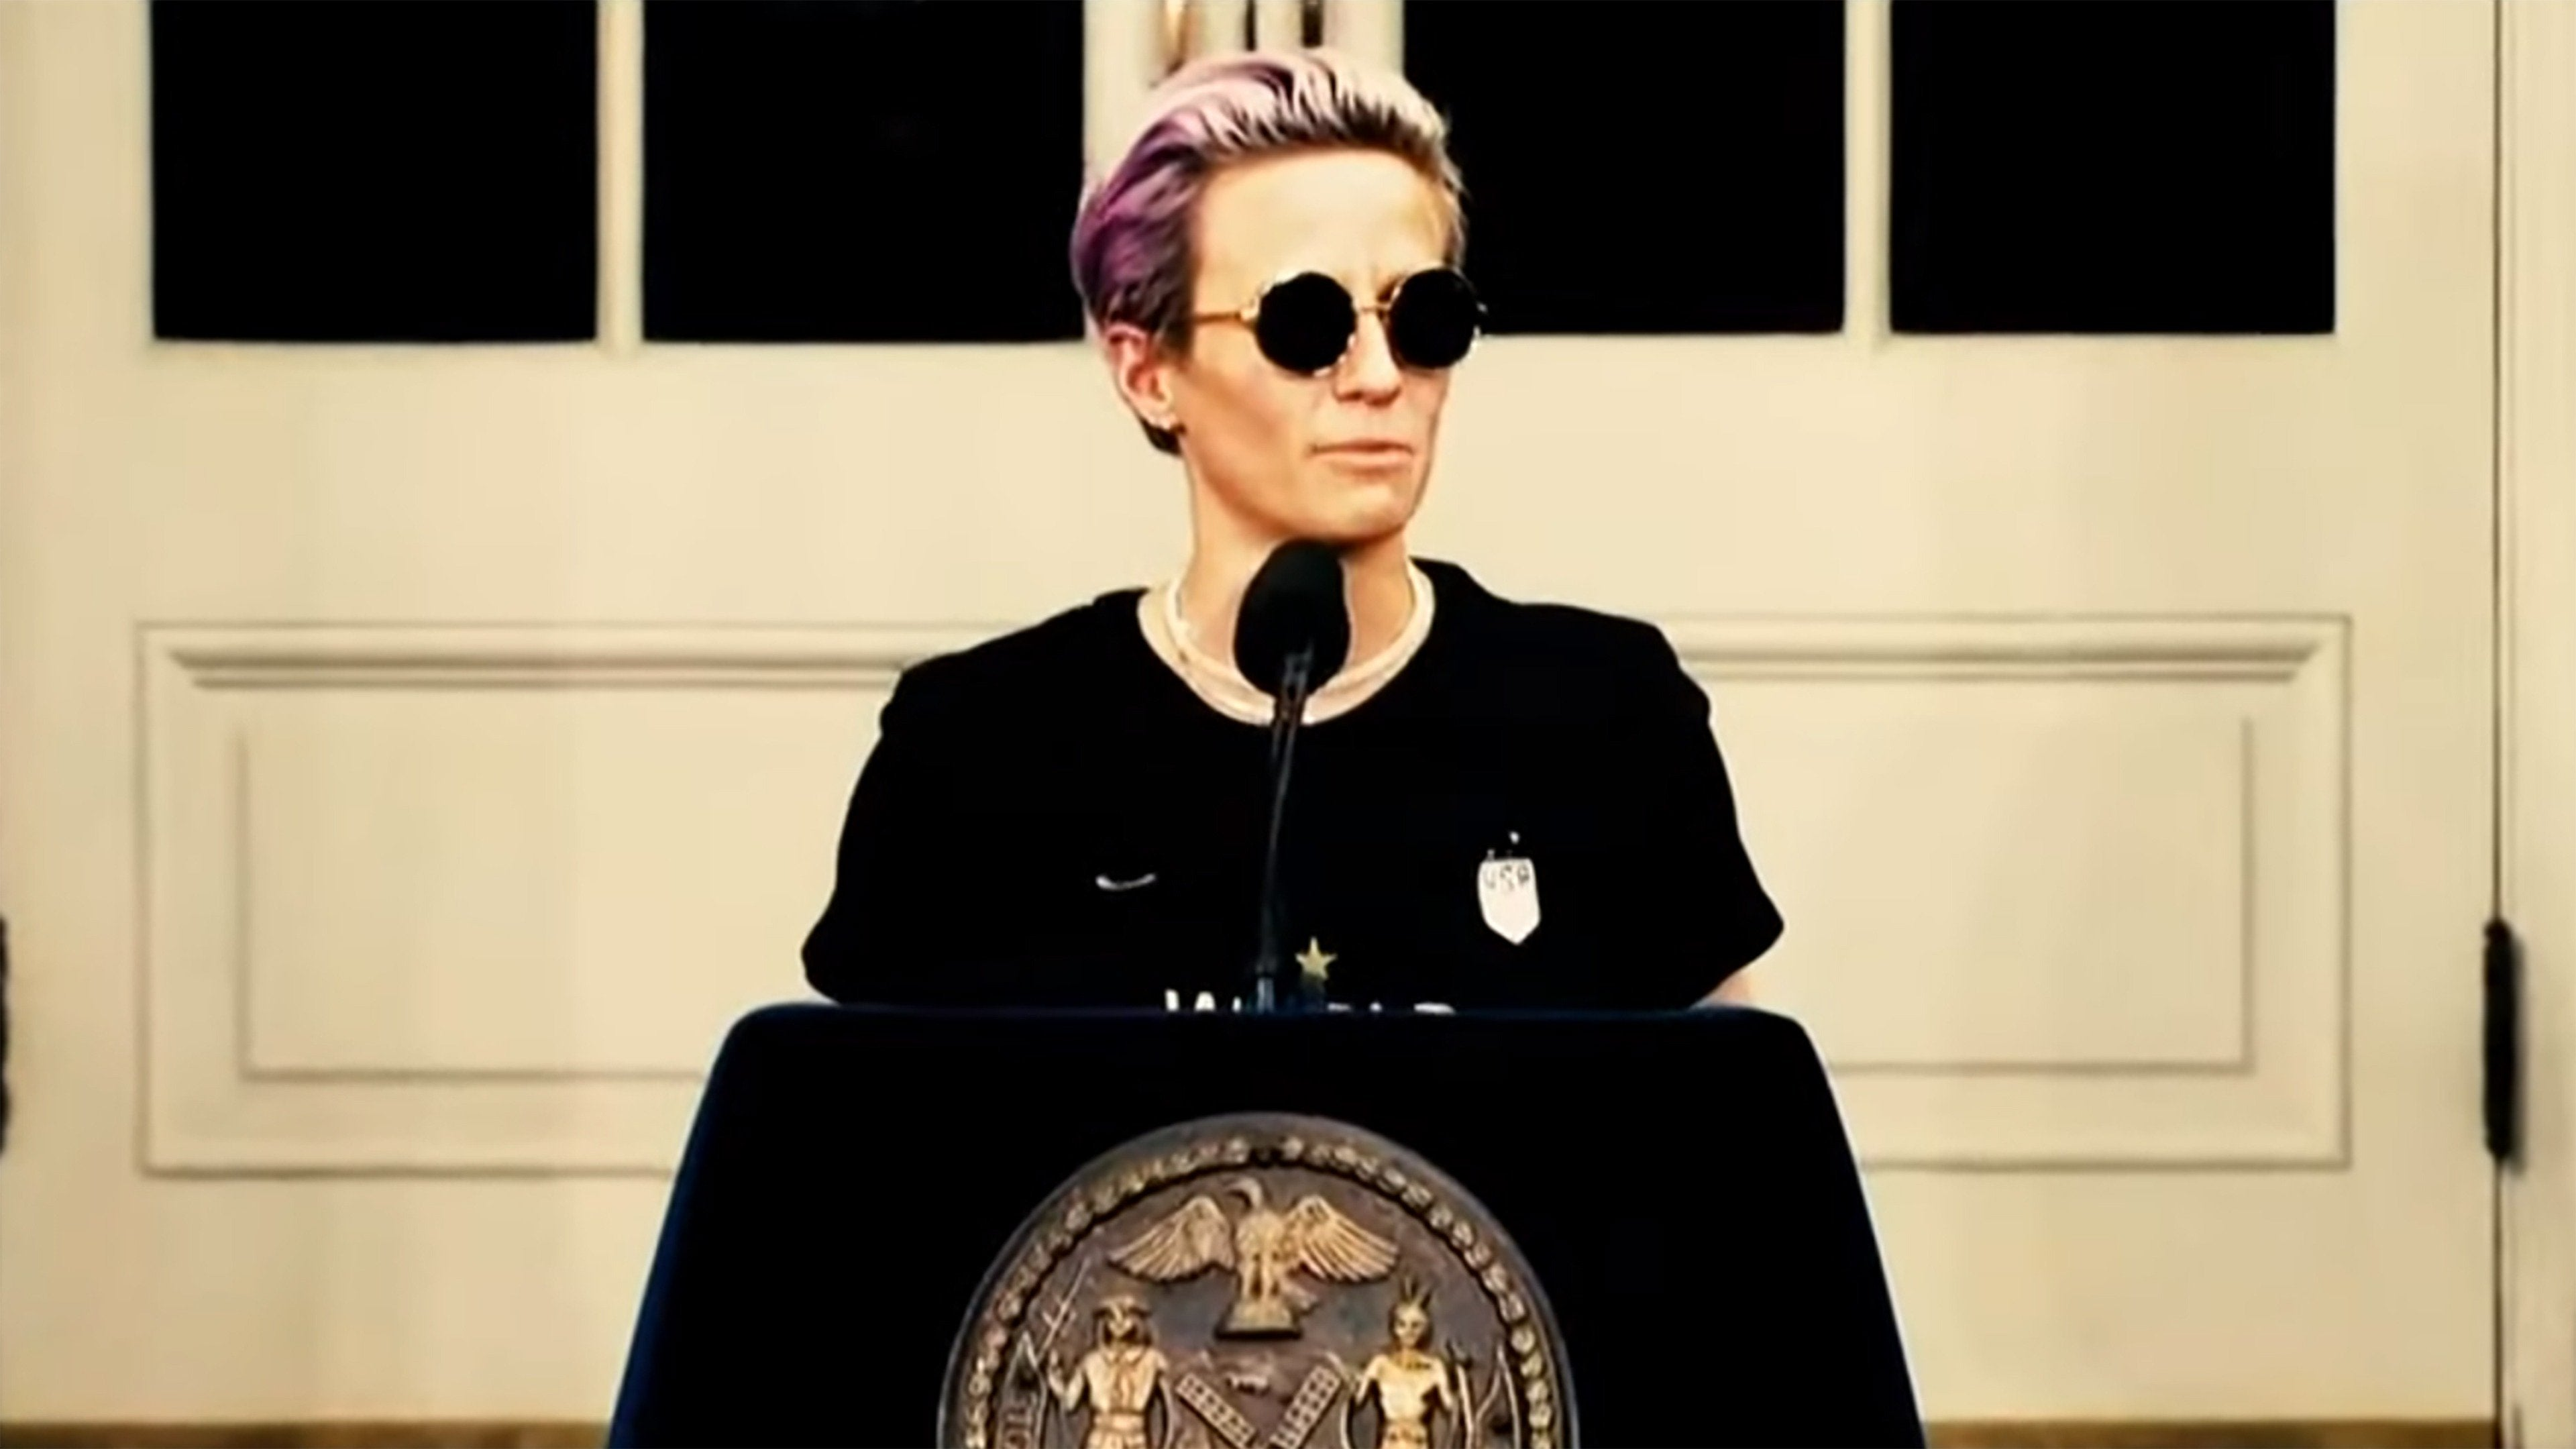 Megan Rapinoe: The US Soccer Star Who Spoke Out